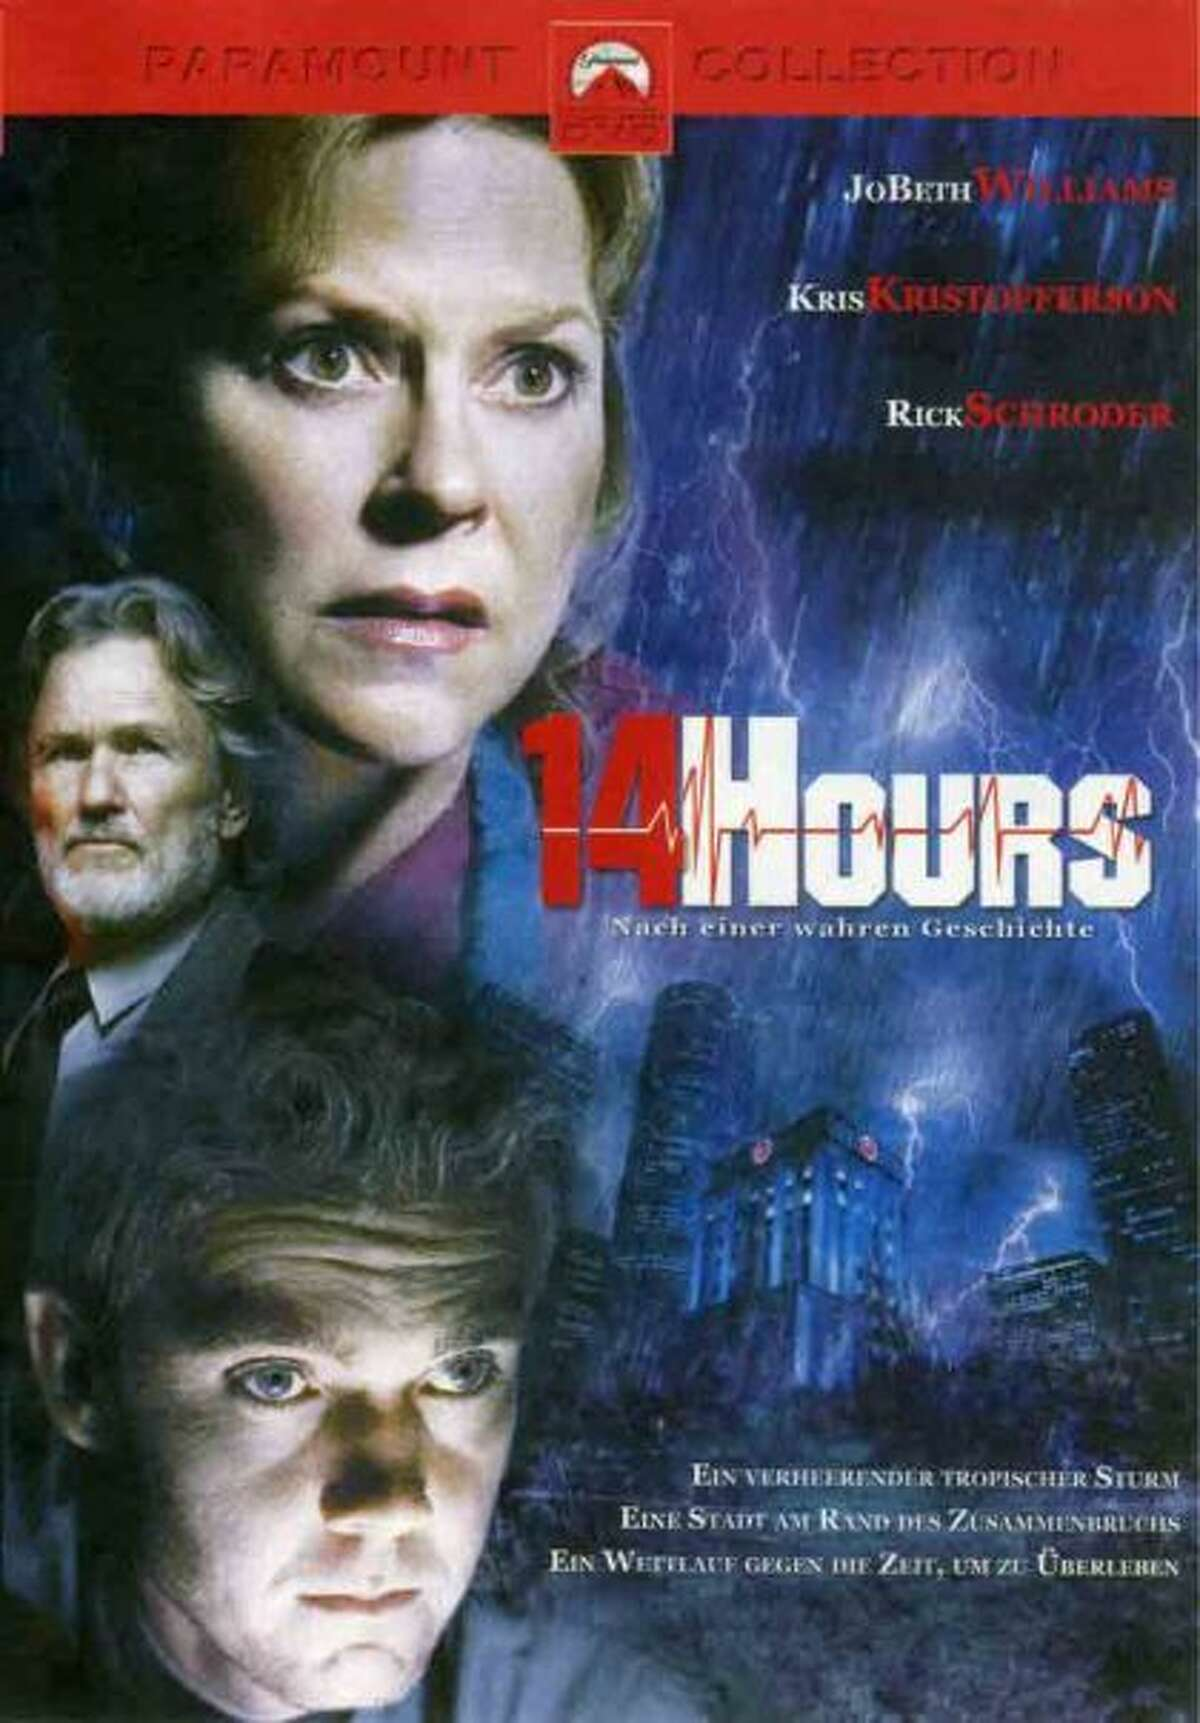 14 Hours , 2005, set in Houston. This film was set during 2001's Tropical Storm Allison and chronicles the work of emergency room doctors saving the lives of evacuated patients. Filmed in Canada, naturally, though it was set at Hermann Hospital. Decent cast though.